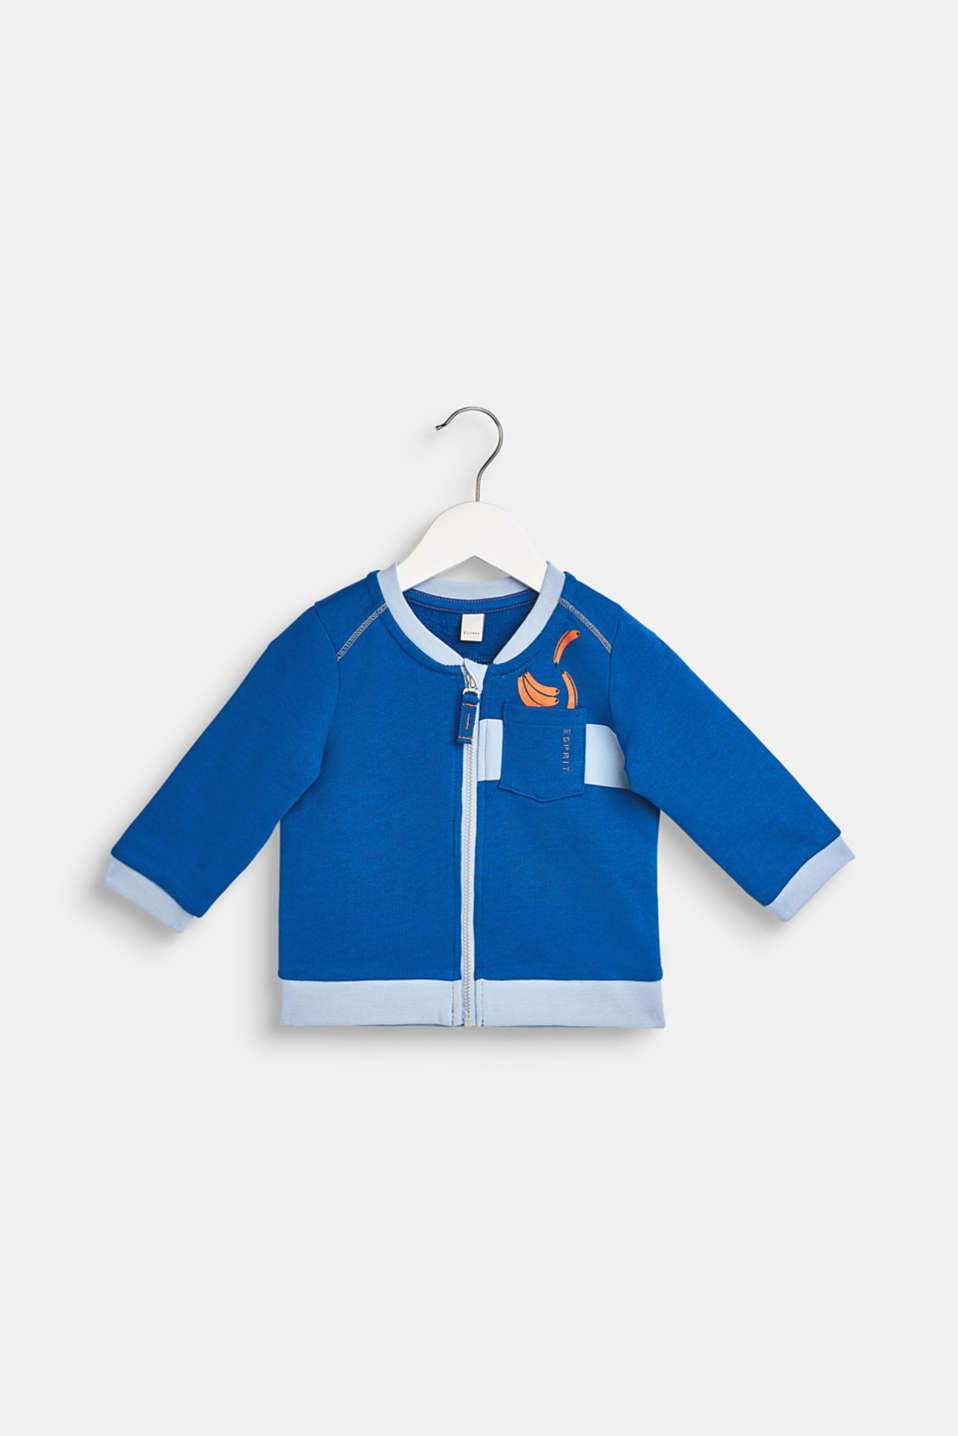 Sweatshirt cardigan in 100% cotton, LCELECTRIC BLUE, detail image number 0